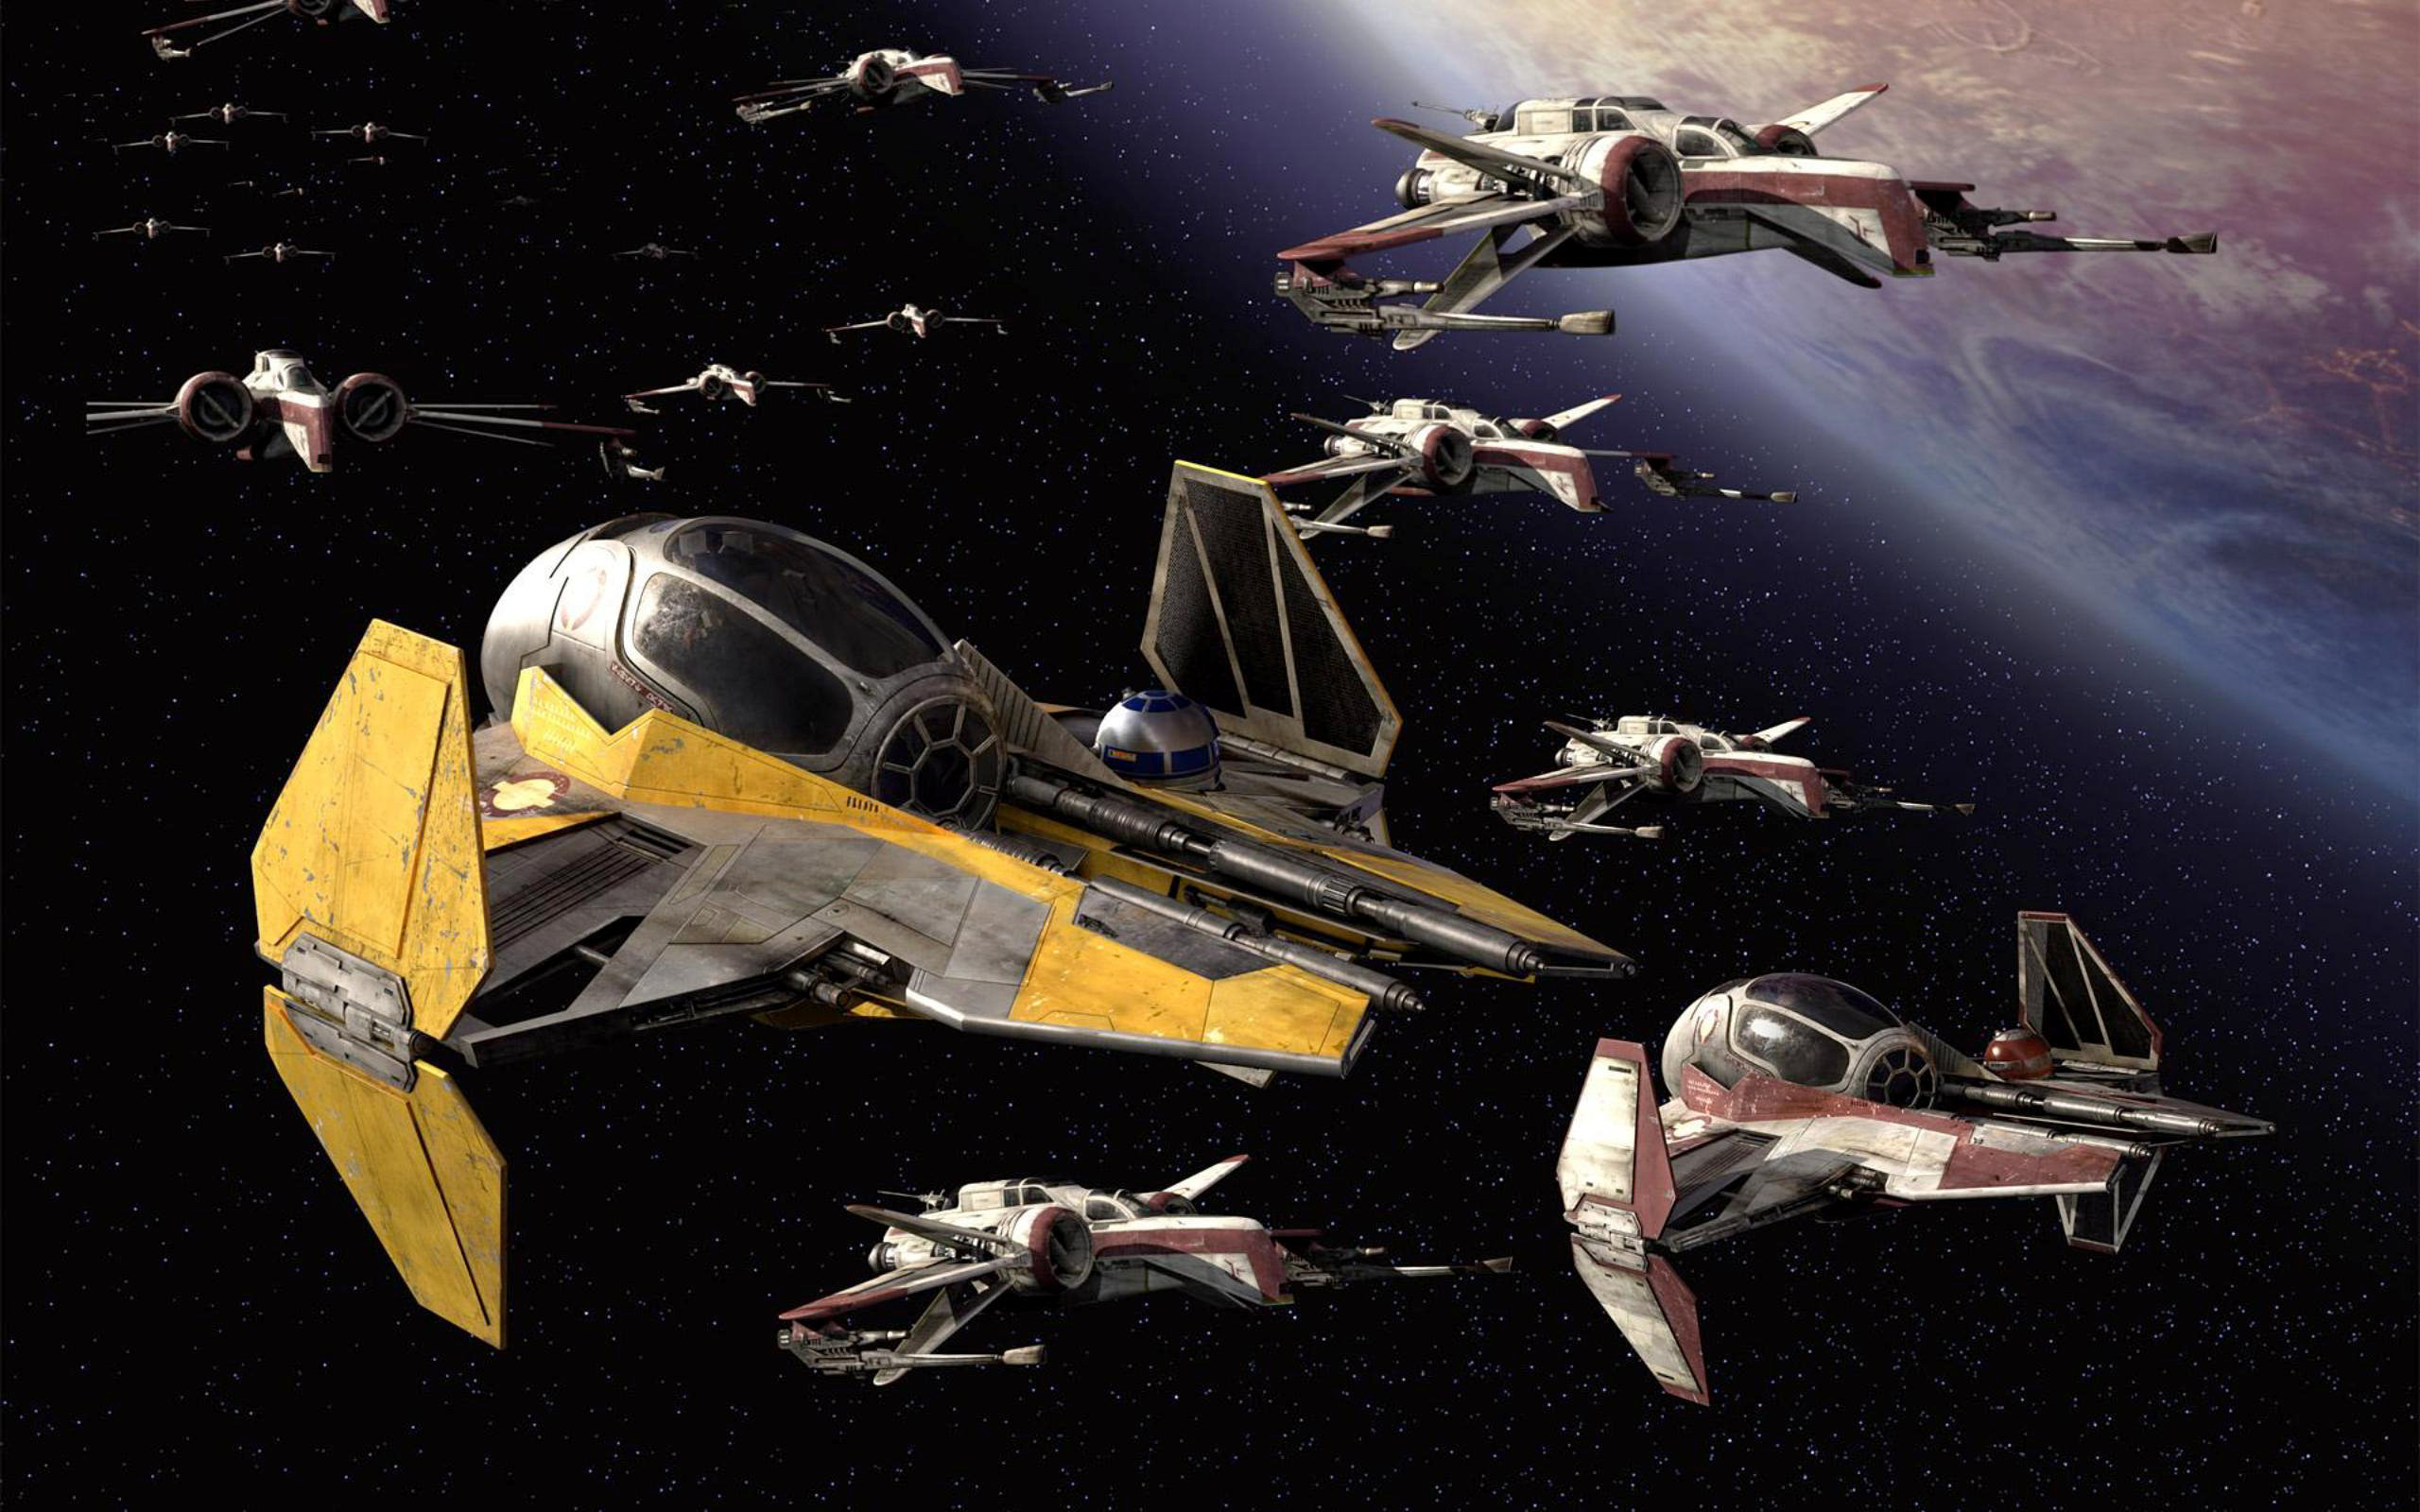 30 star wars wallpapers backgrounds images design - Battlefield screensaver ...